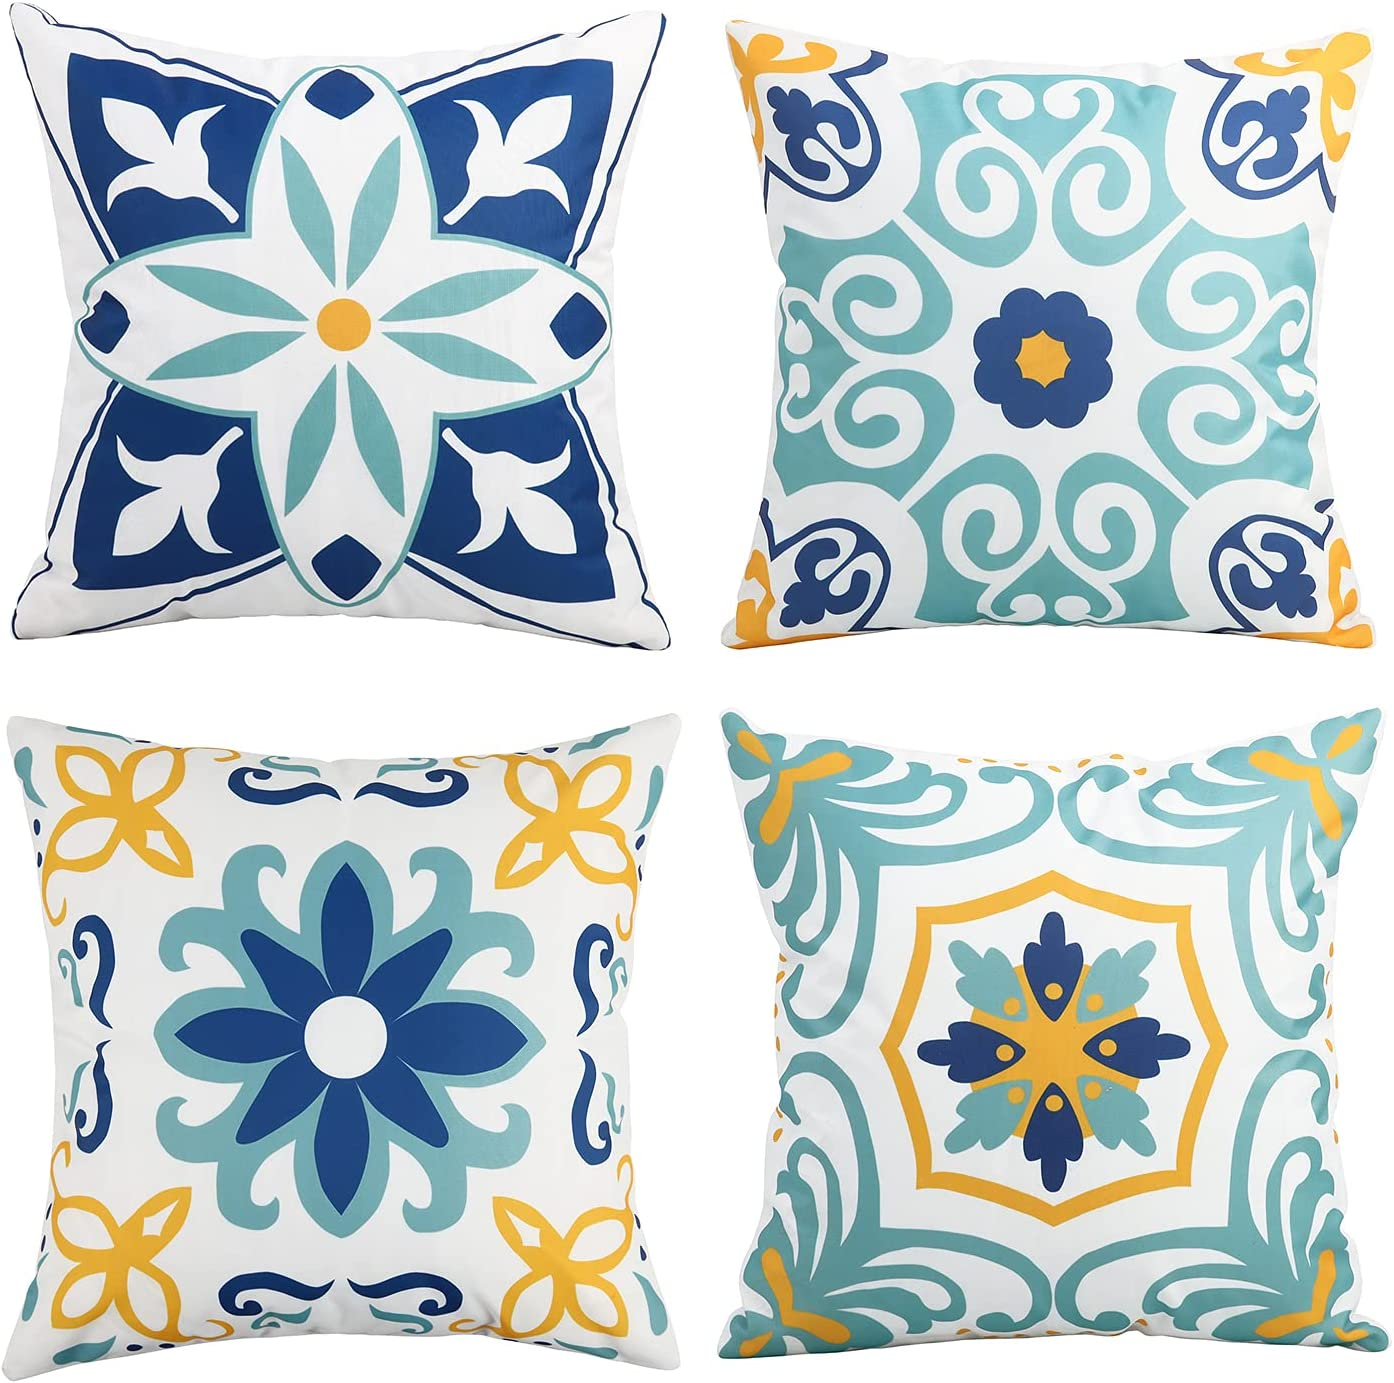 Outdoor Waterproof Throw Pillow Covers Set of 4 Floral Printed and Boho Farmhouse Outdoor Pillow Covers for Patio Funiture Garden 18x18 Inch Blue